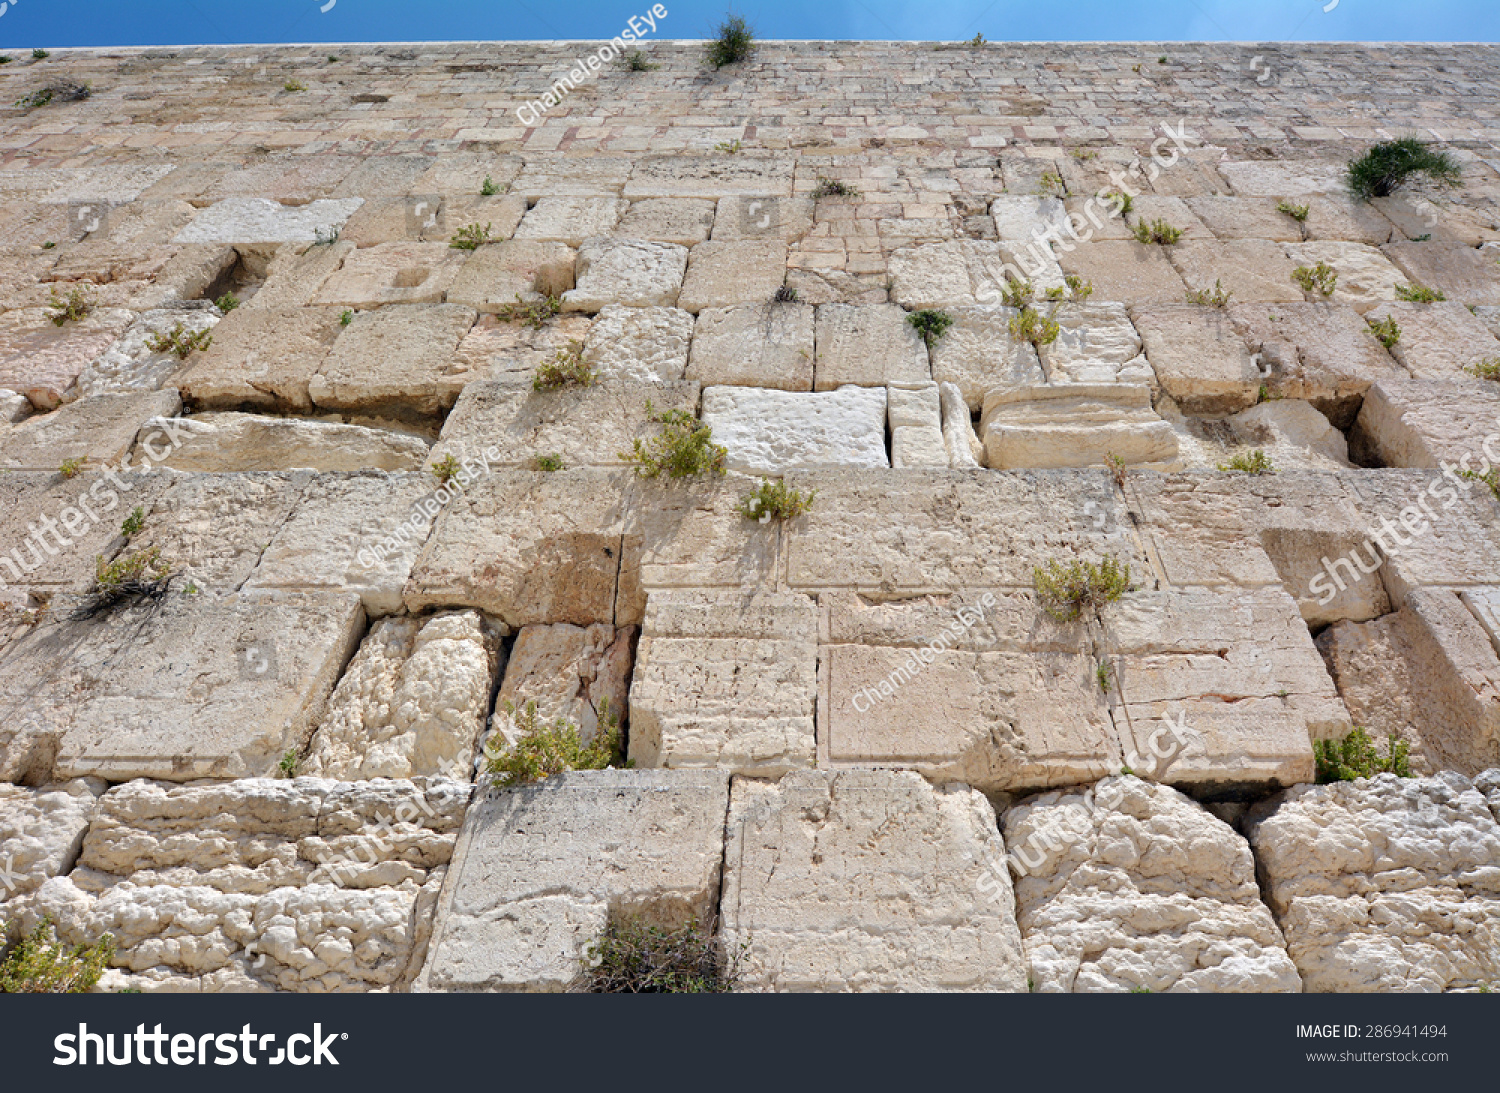 The Western Wall Of The Temple Mount In Jerusalem, Israel ...